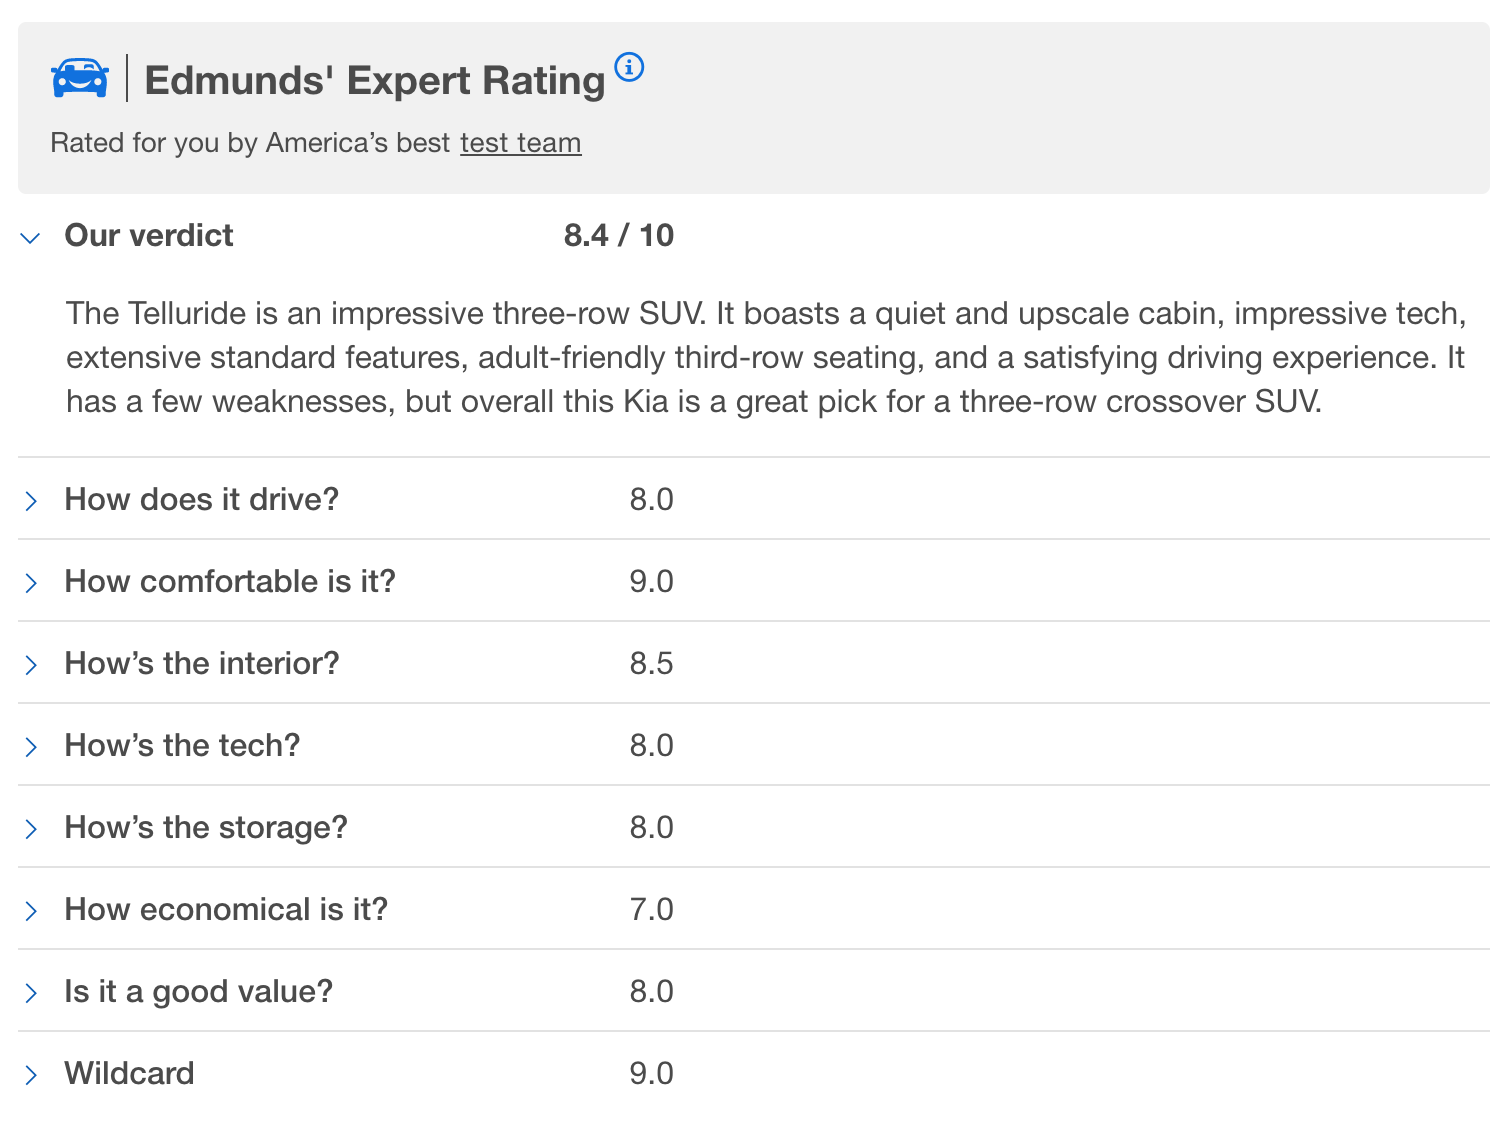 Edmunds' Expert Rating